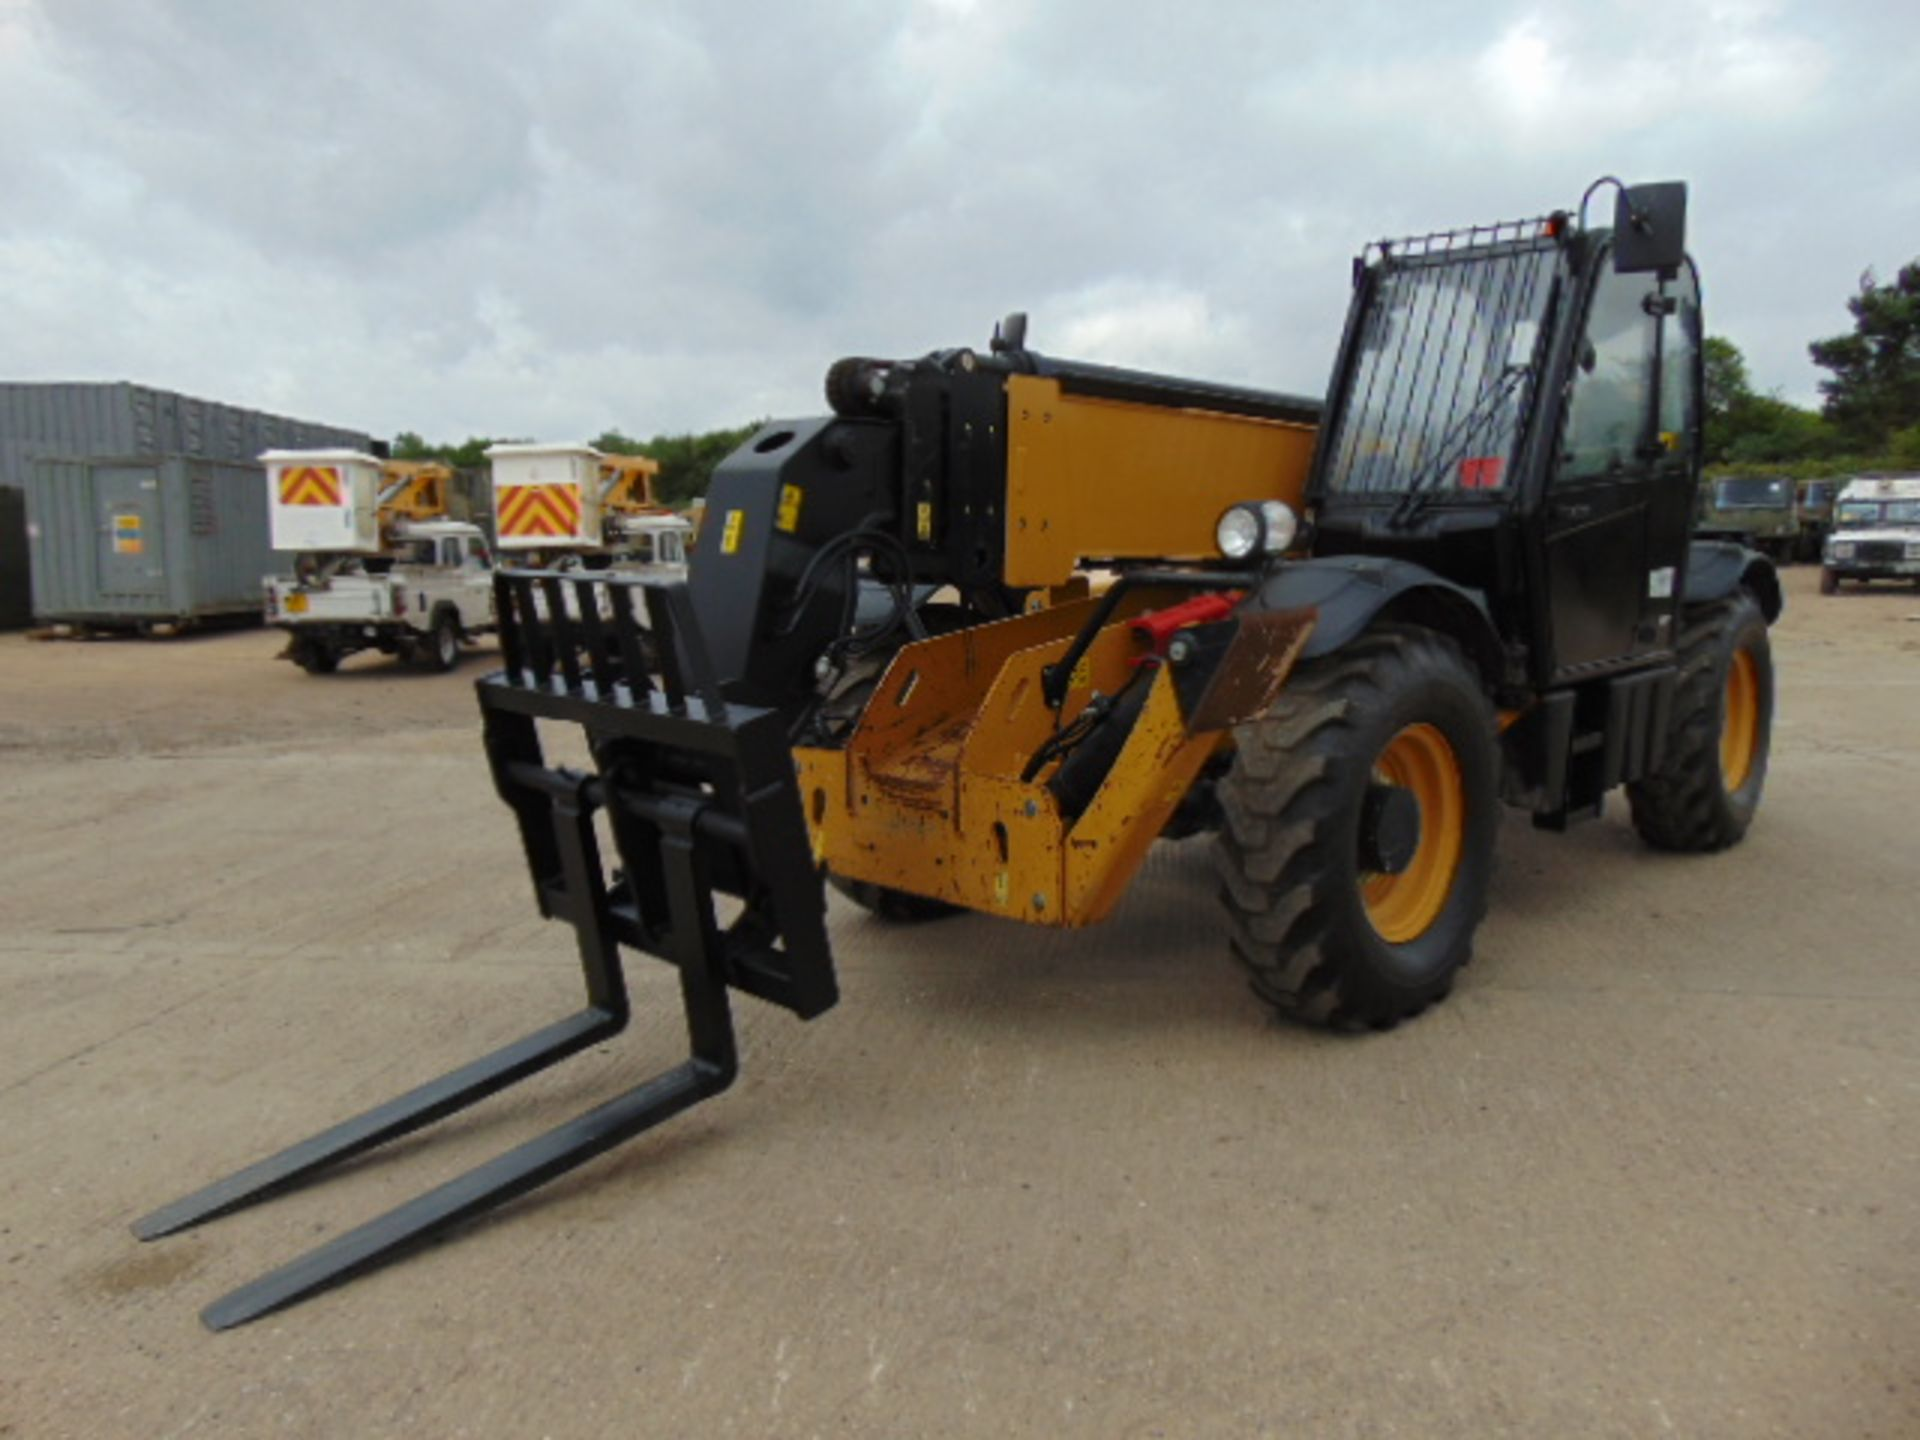 Lot 38 - 2014 Caterpillar TH417GC 4.0 ton Telehandler only 1,837 hours!